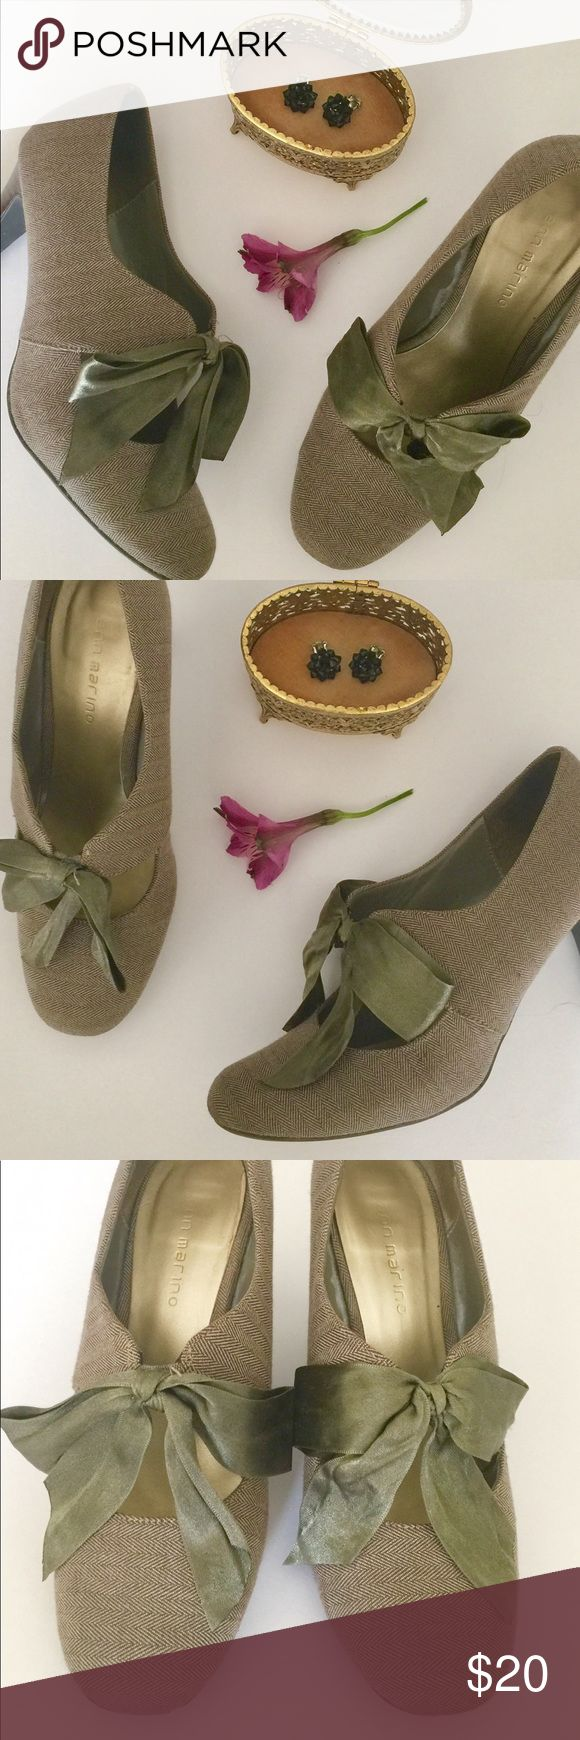 Librarian chic tweed oxford pumps These are a gorgeous pair of tweed retro style pumps. In good condition, normal wear. Would look great with a anthro dress, glasses, and brown leather satchel in the fall. Ann Marino Shoes Heels